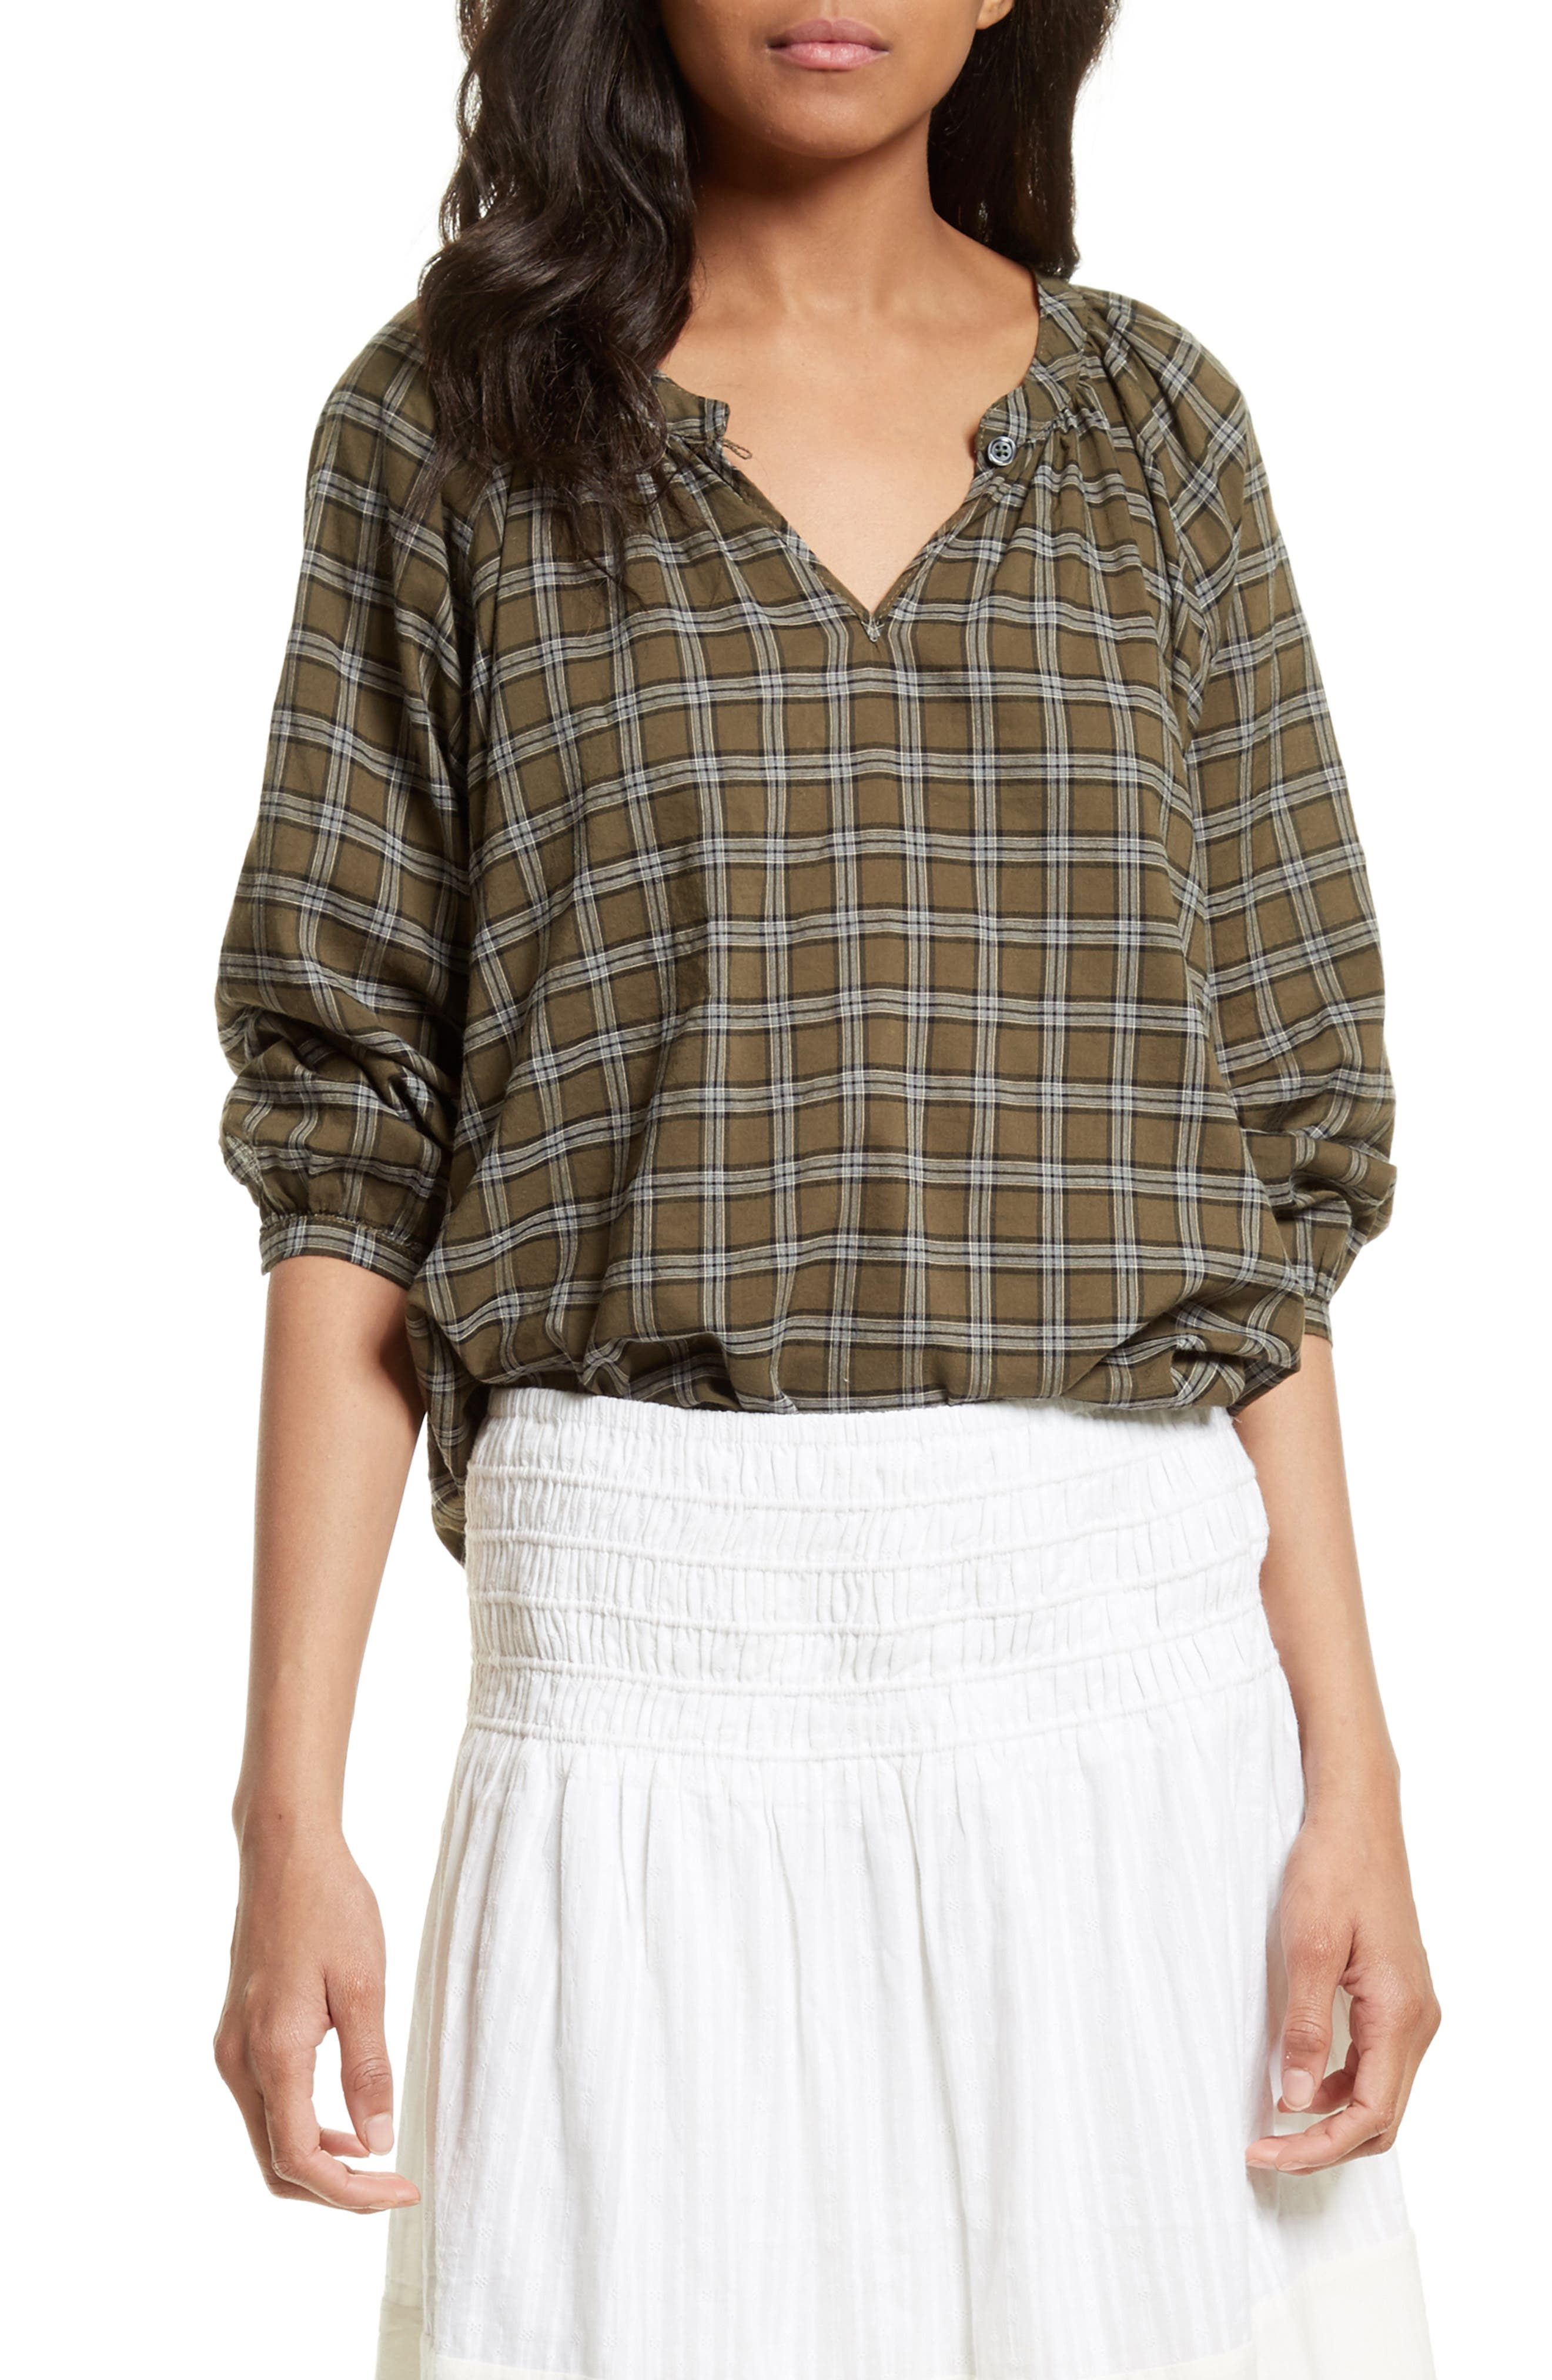 THE GREAT. The Wildflower Plaid Top